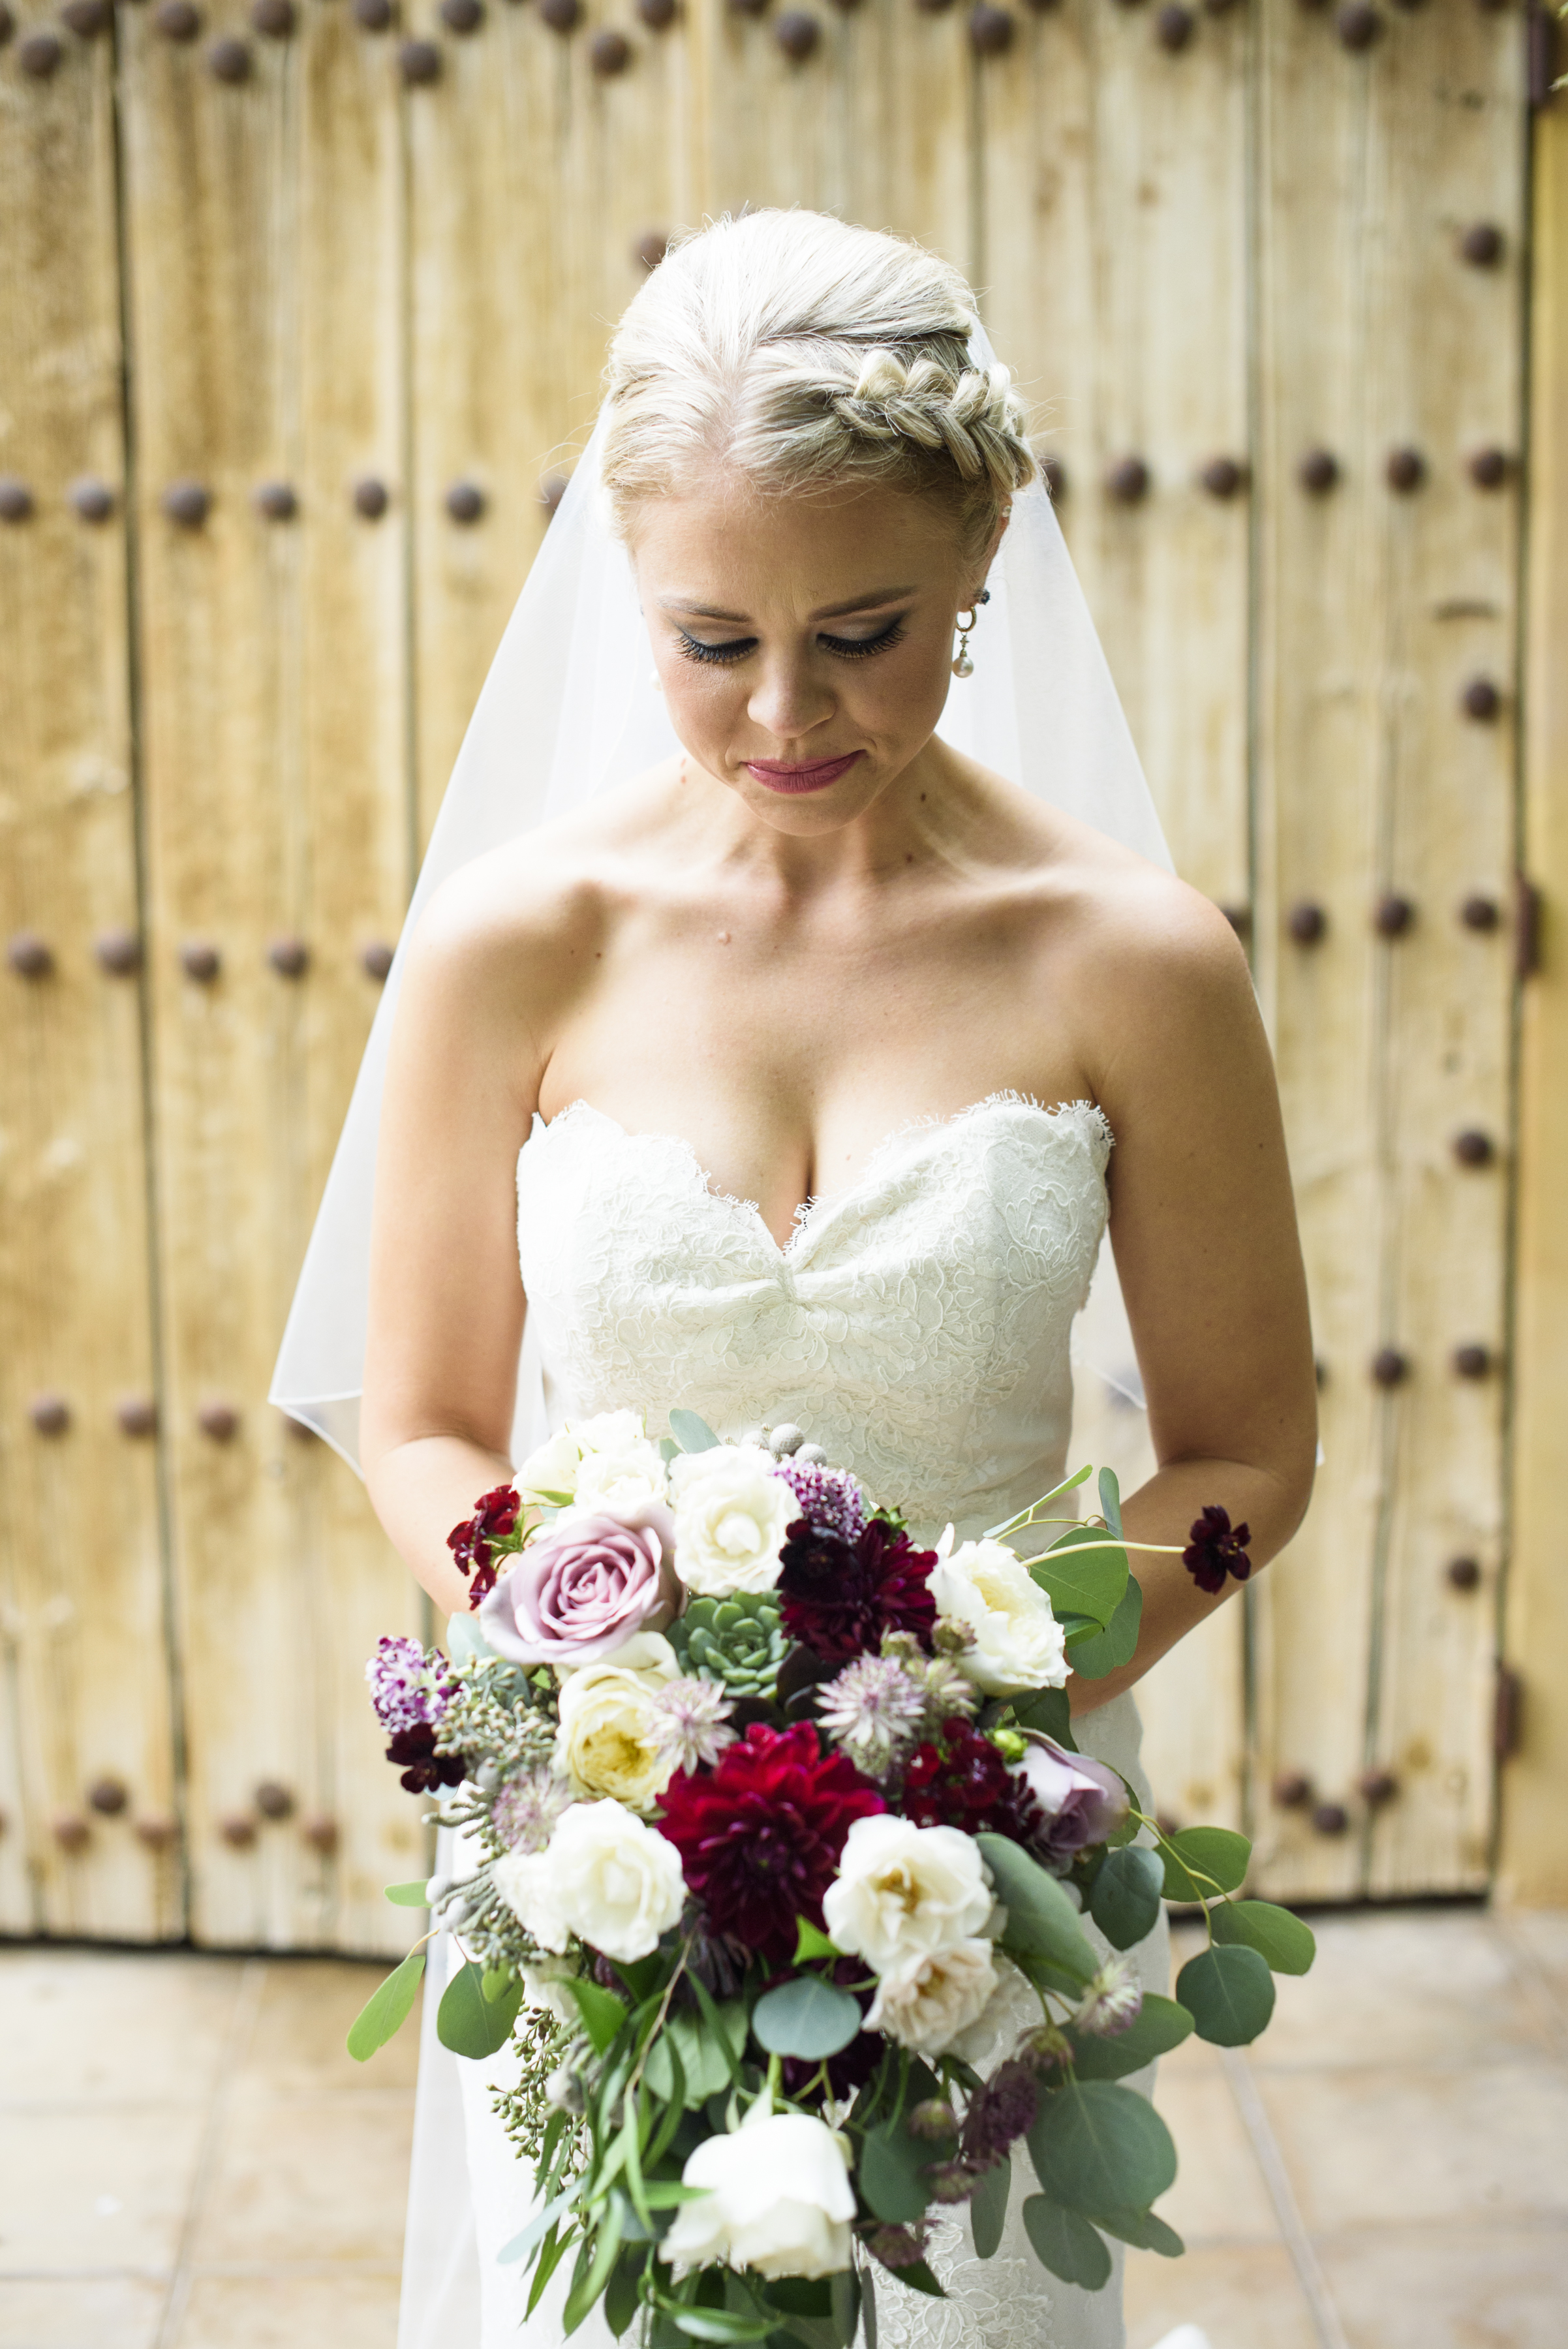 royal palms wedding, phoenix wedding planner, arizona wedding planner, wedding bouquet